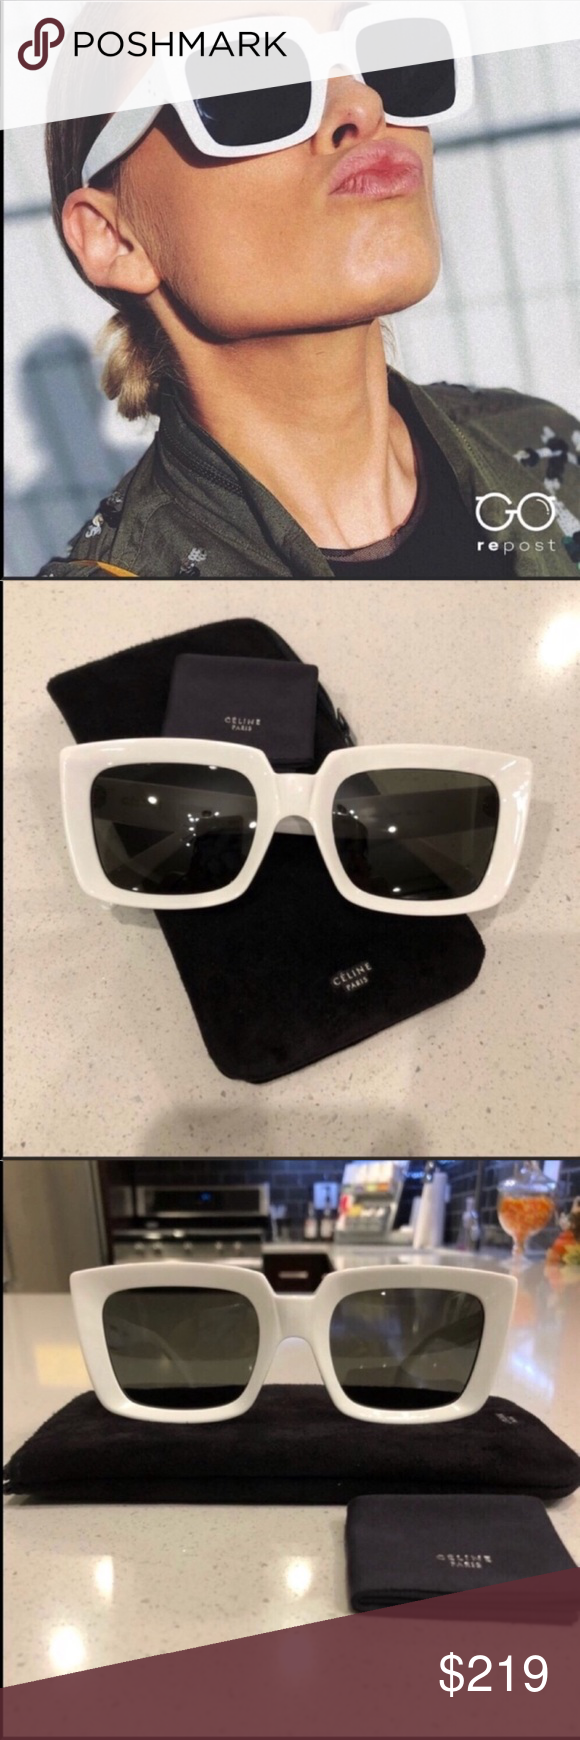 1c7e5150609 Spotted while shopping on Poshmark  Celine sunglasses!  poshmark  fashion   shopping  style  Celine  Accessories